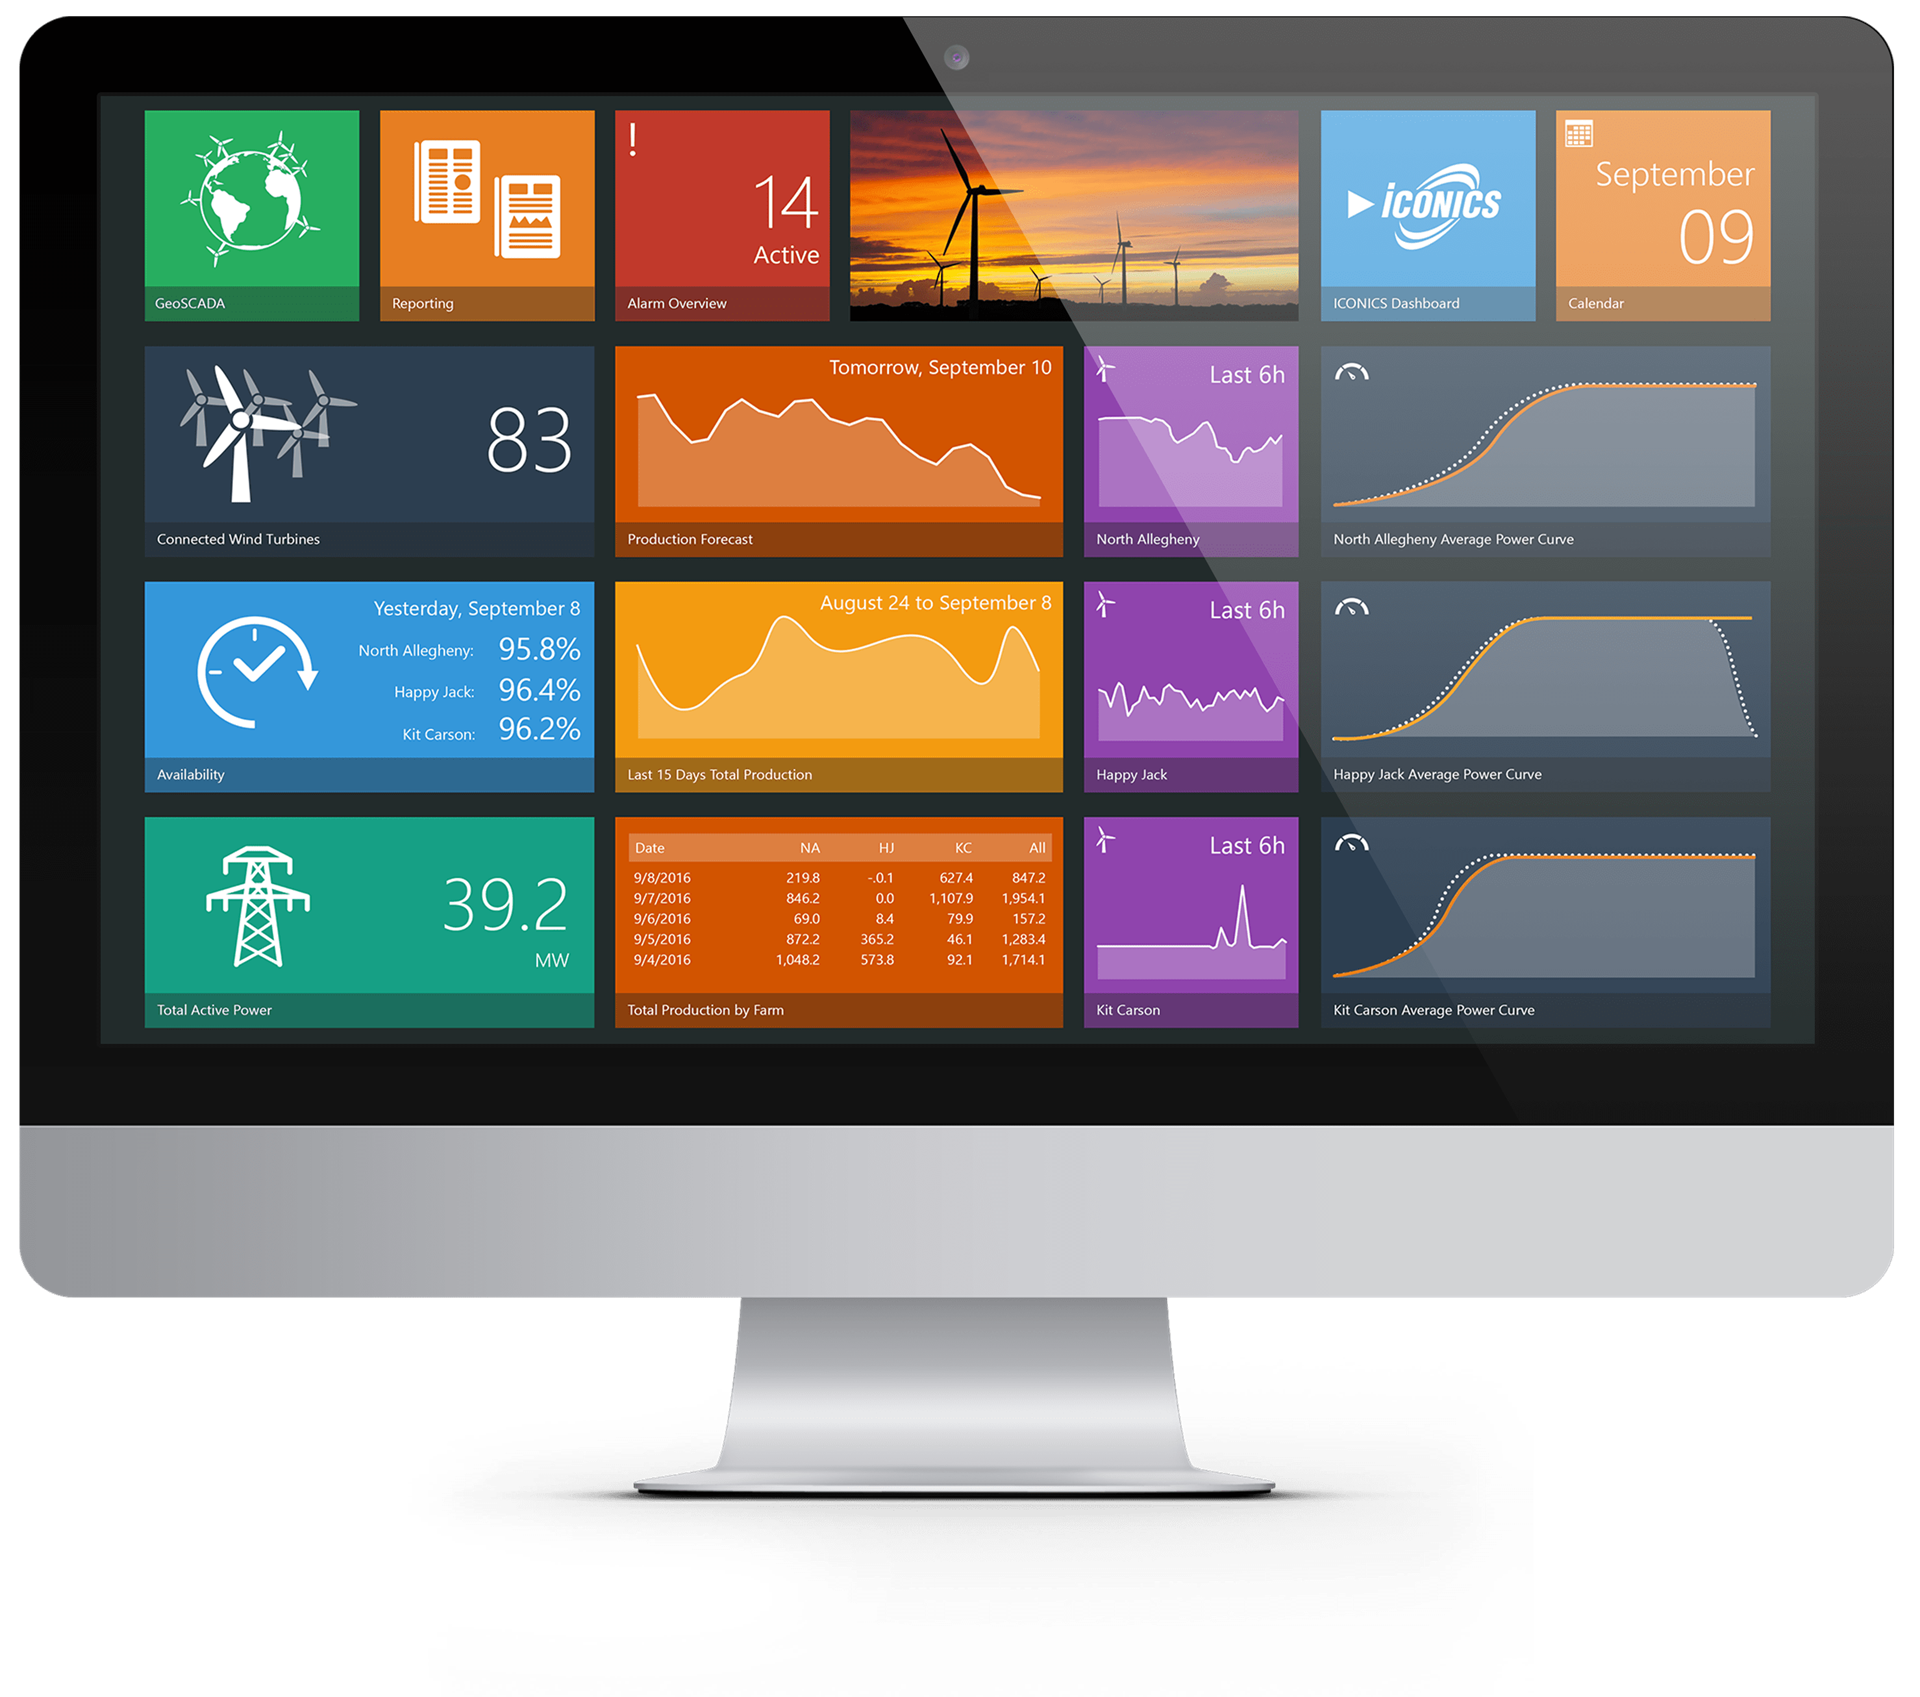 ICONICS Software Solutions